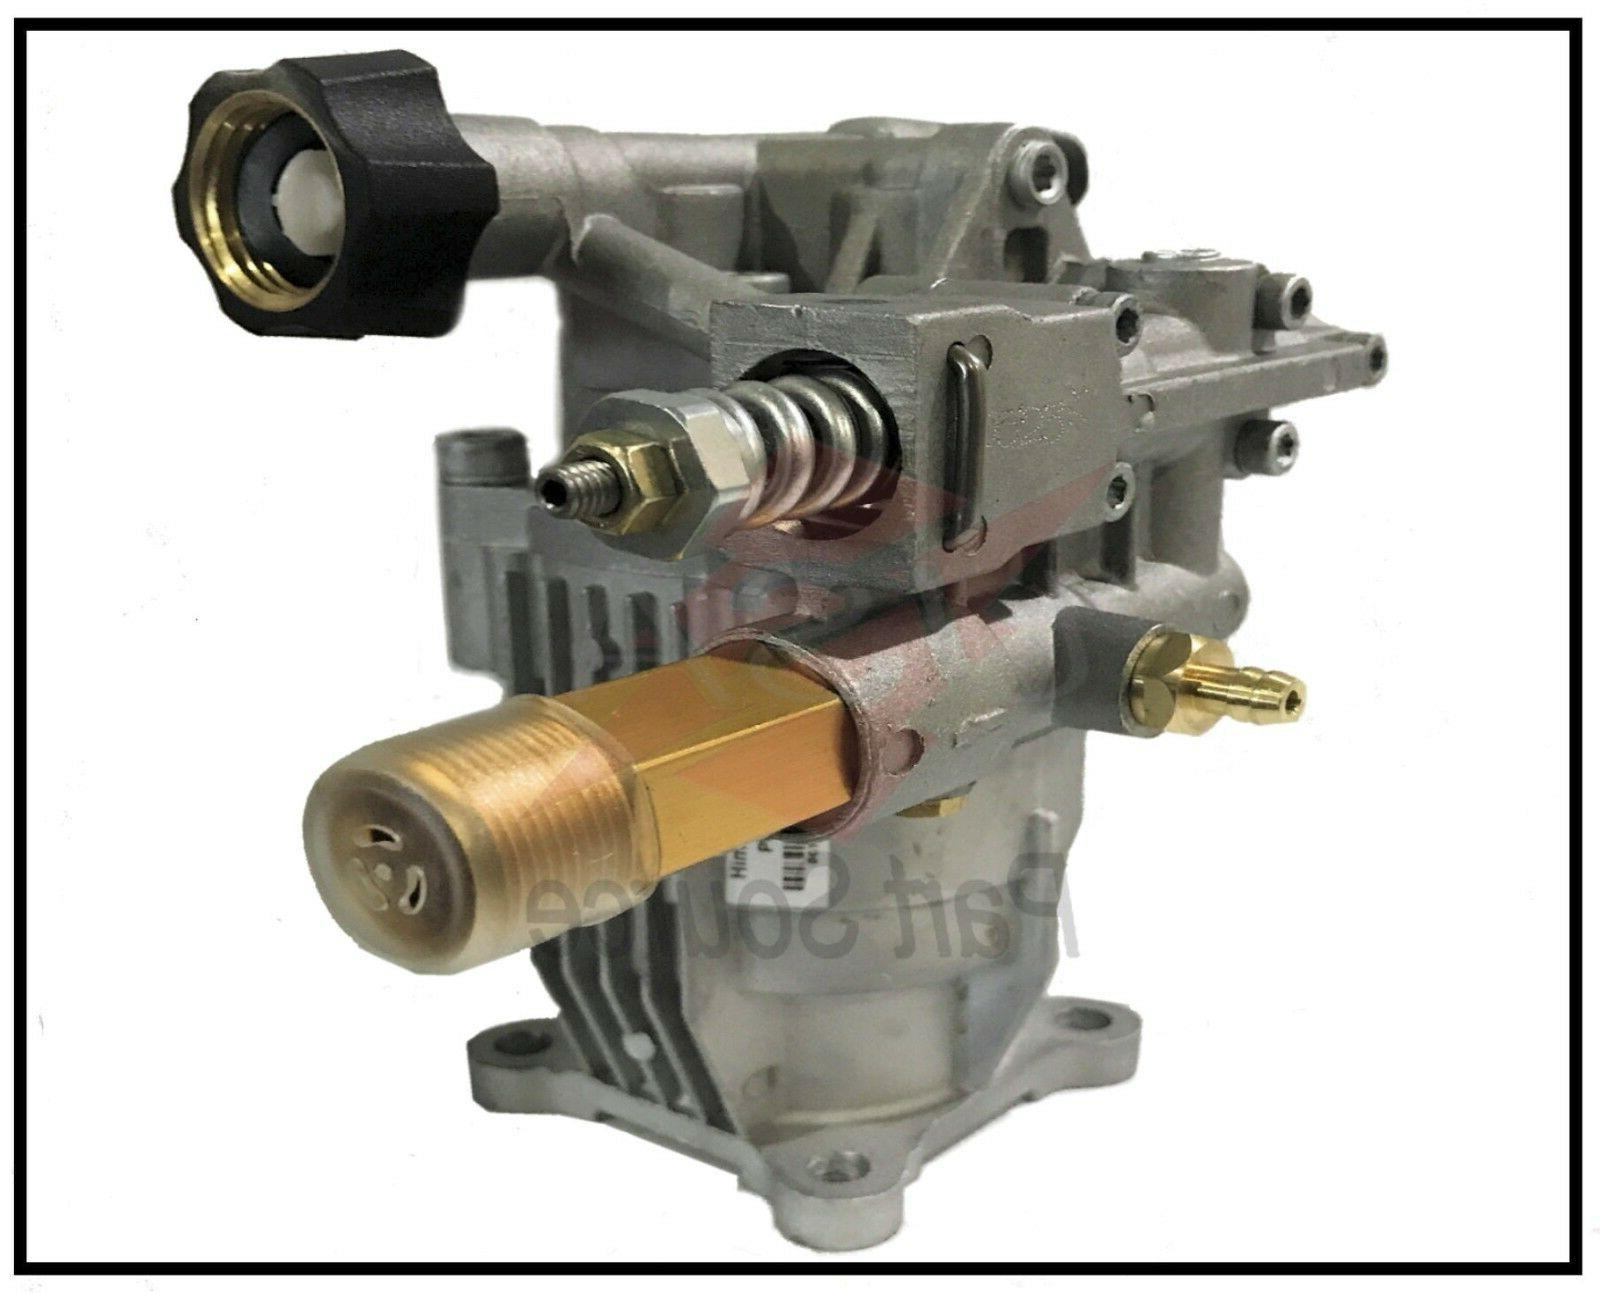 HIMORE 309515003 POWER PRESSURE WASHER WATER PUMP 3000 PSI A